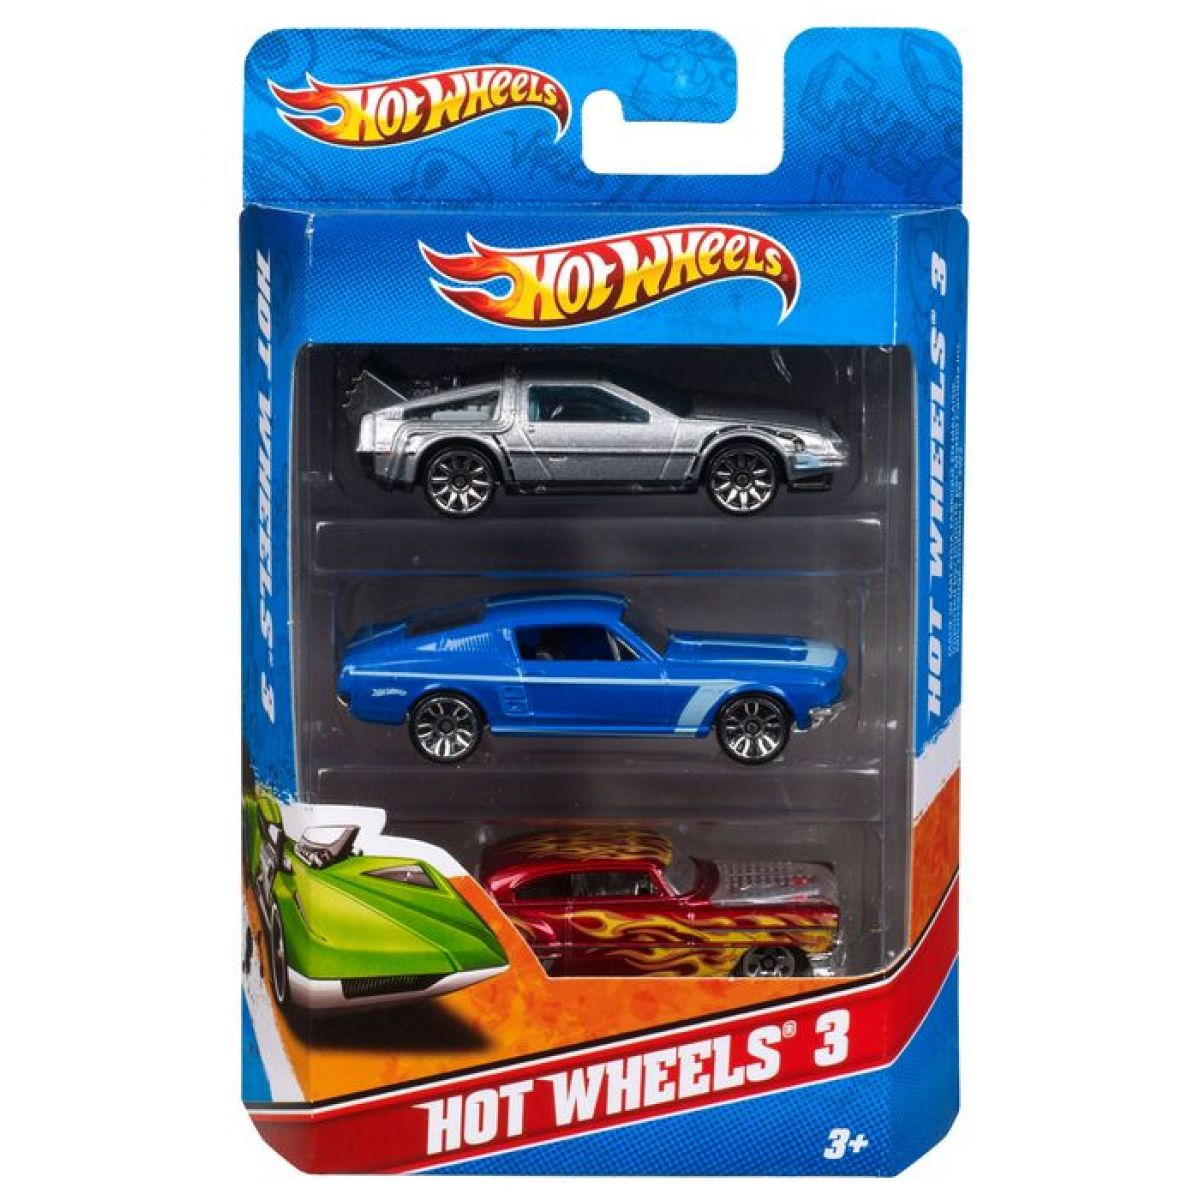 Hot Wheels Autíčka 3ks